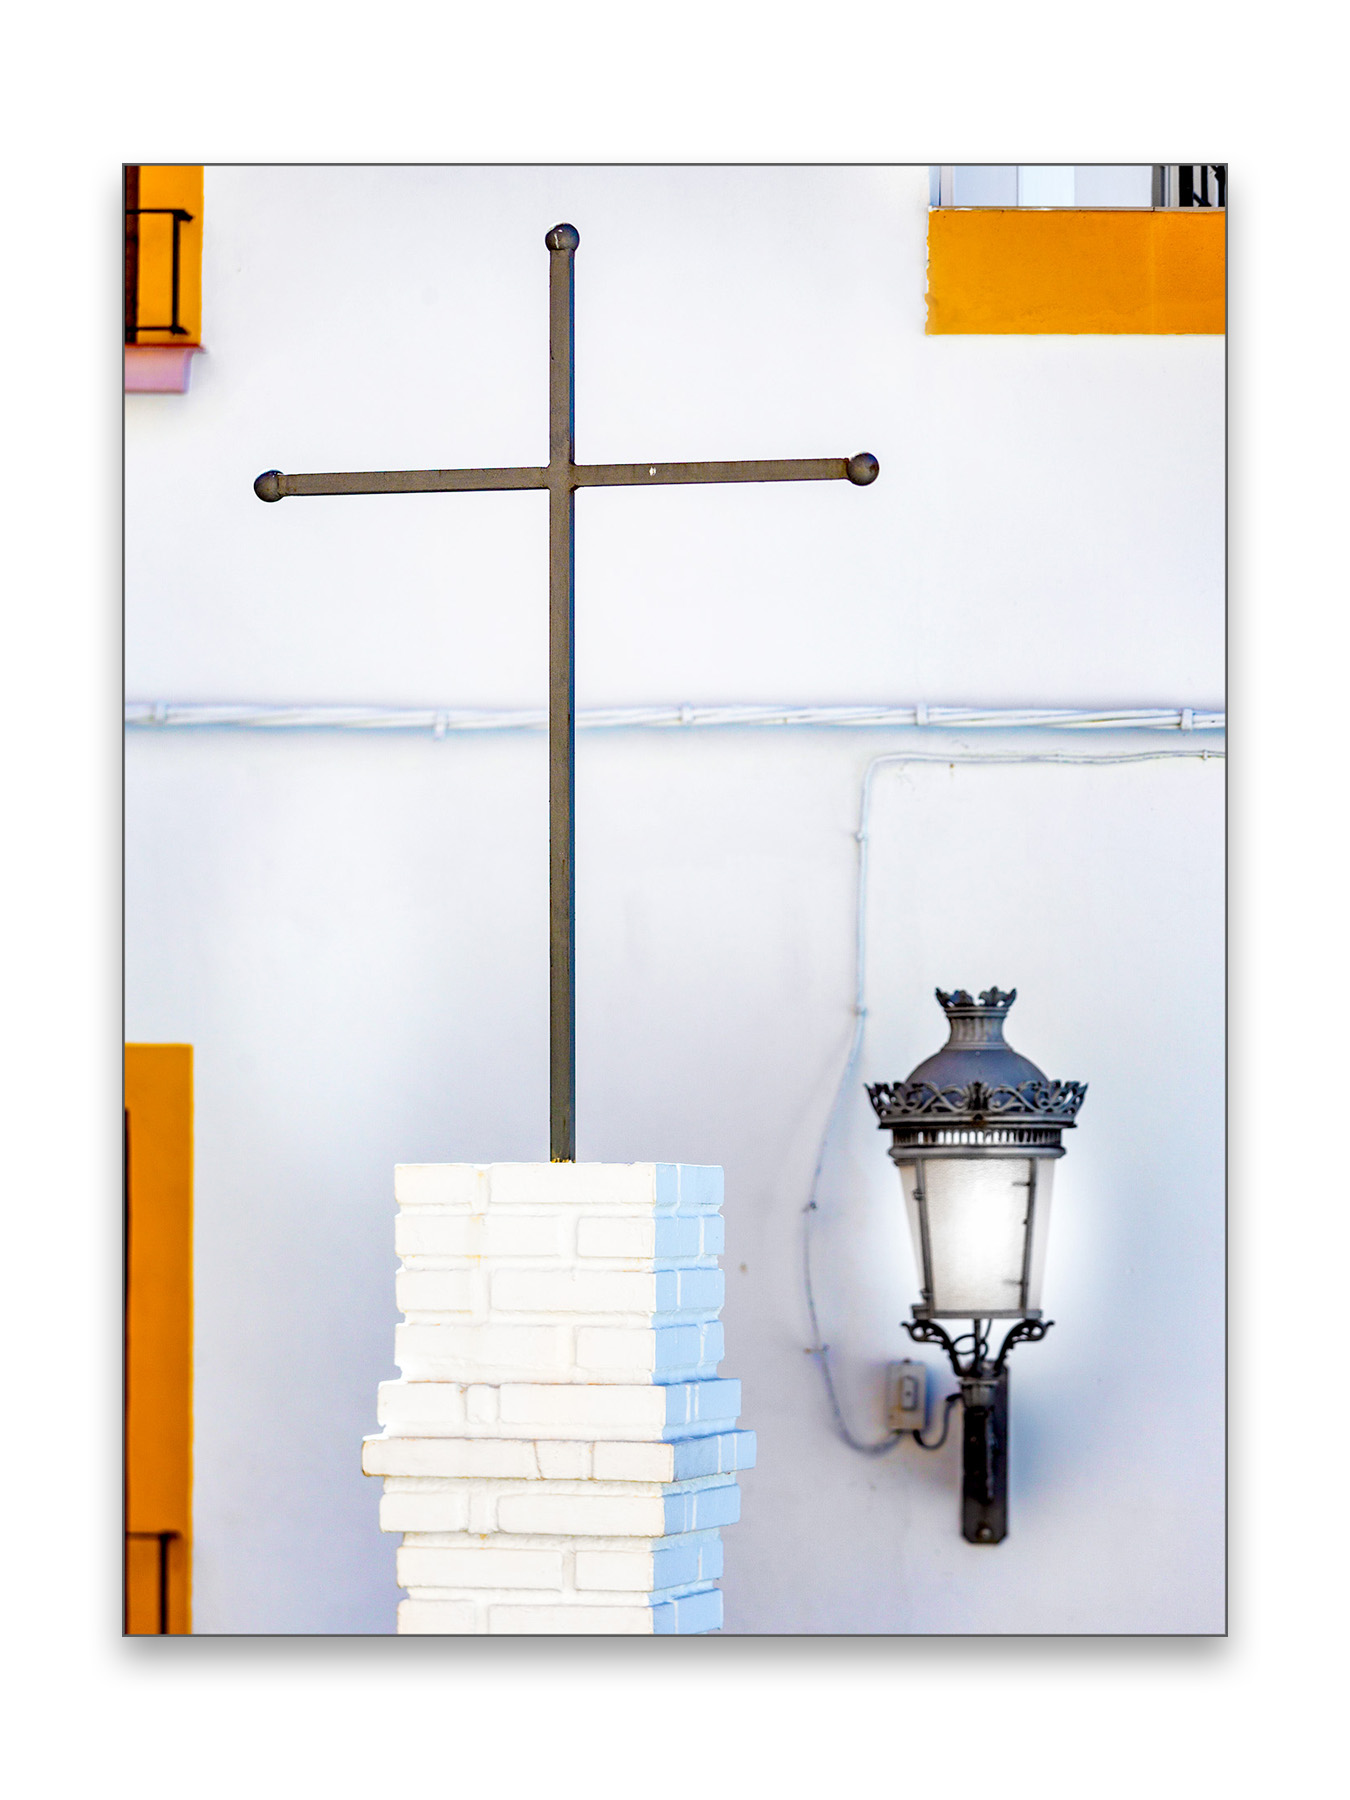 Steel Cross - 30 x 40 cm € 65,-45 x 60 cm € 95,-60 x 90 cm, € 175,-Limited edition of 108 of 10 available